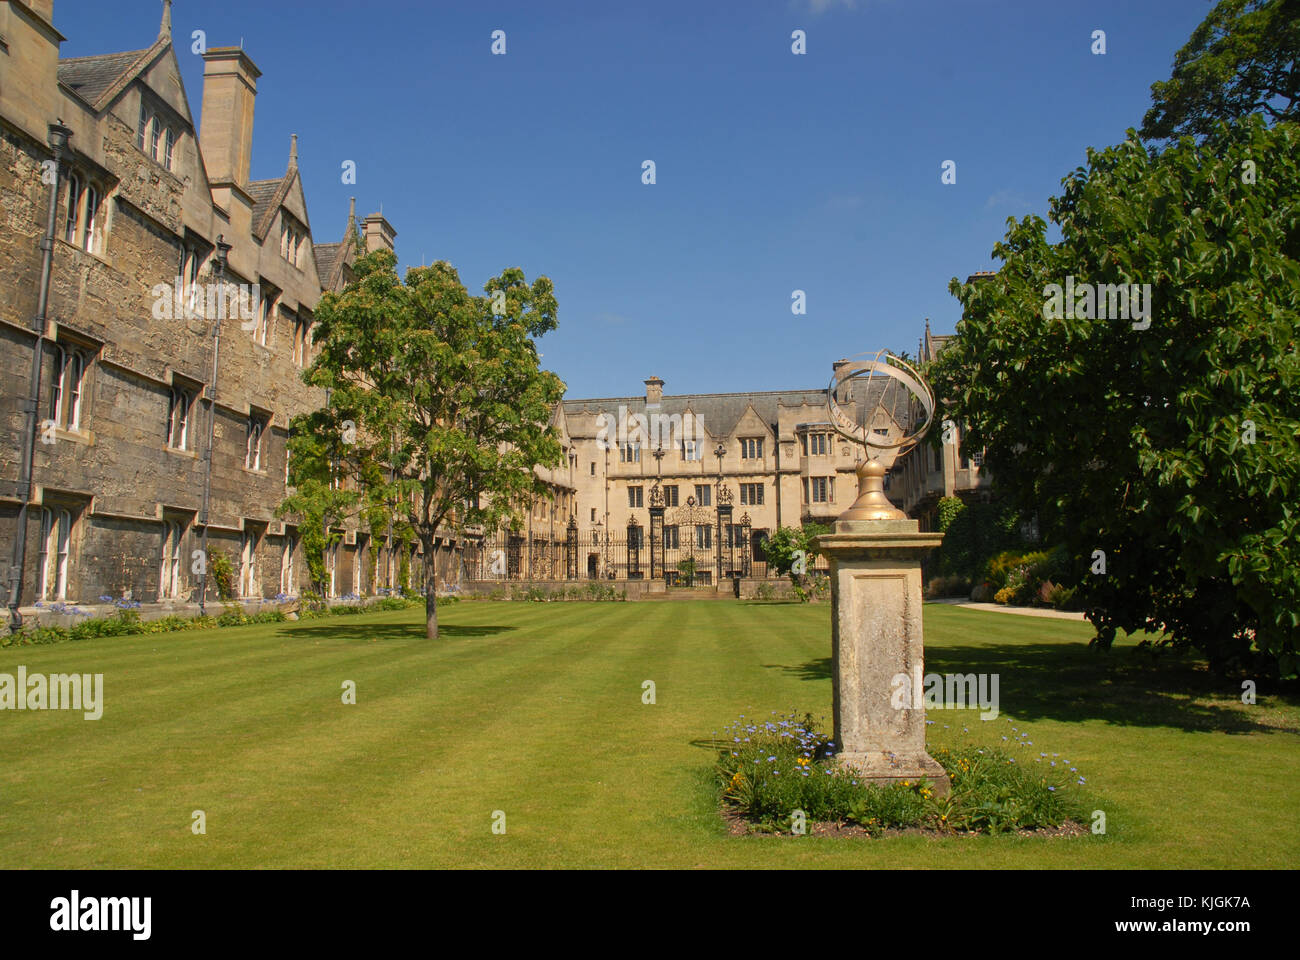 Oxford, United Kingdom - August 8, 2015: Armillary sundial in fellows garden at Merton College - Stock Image